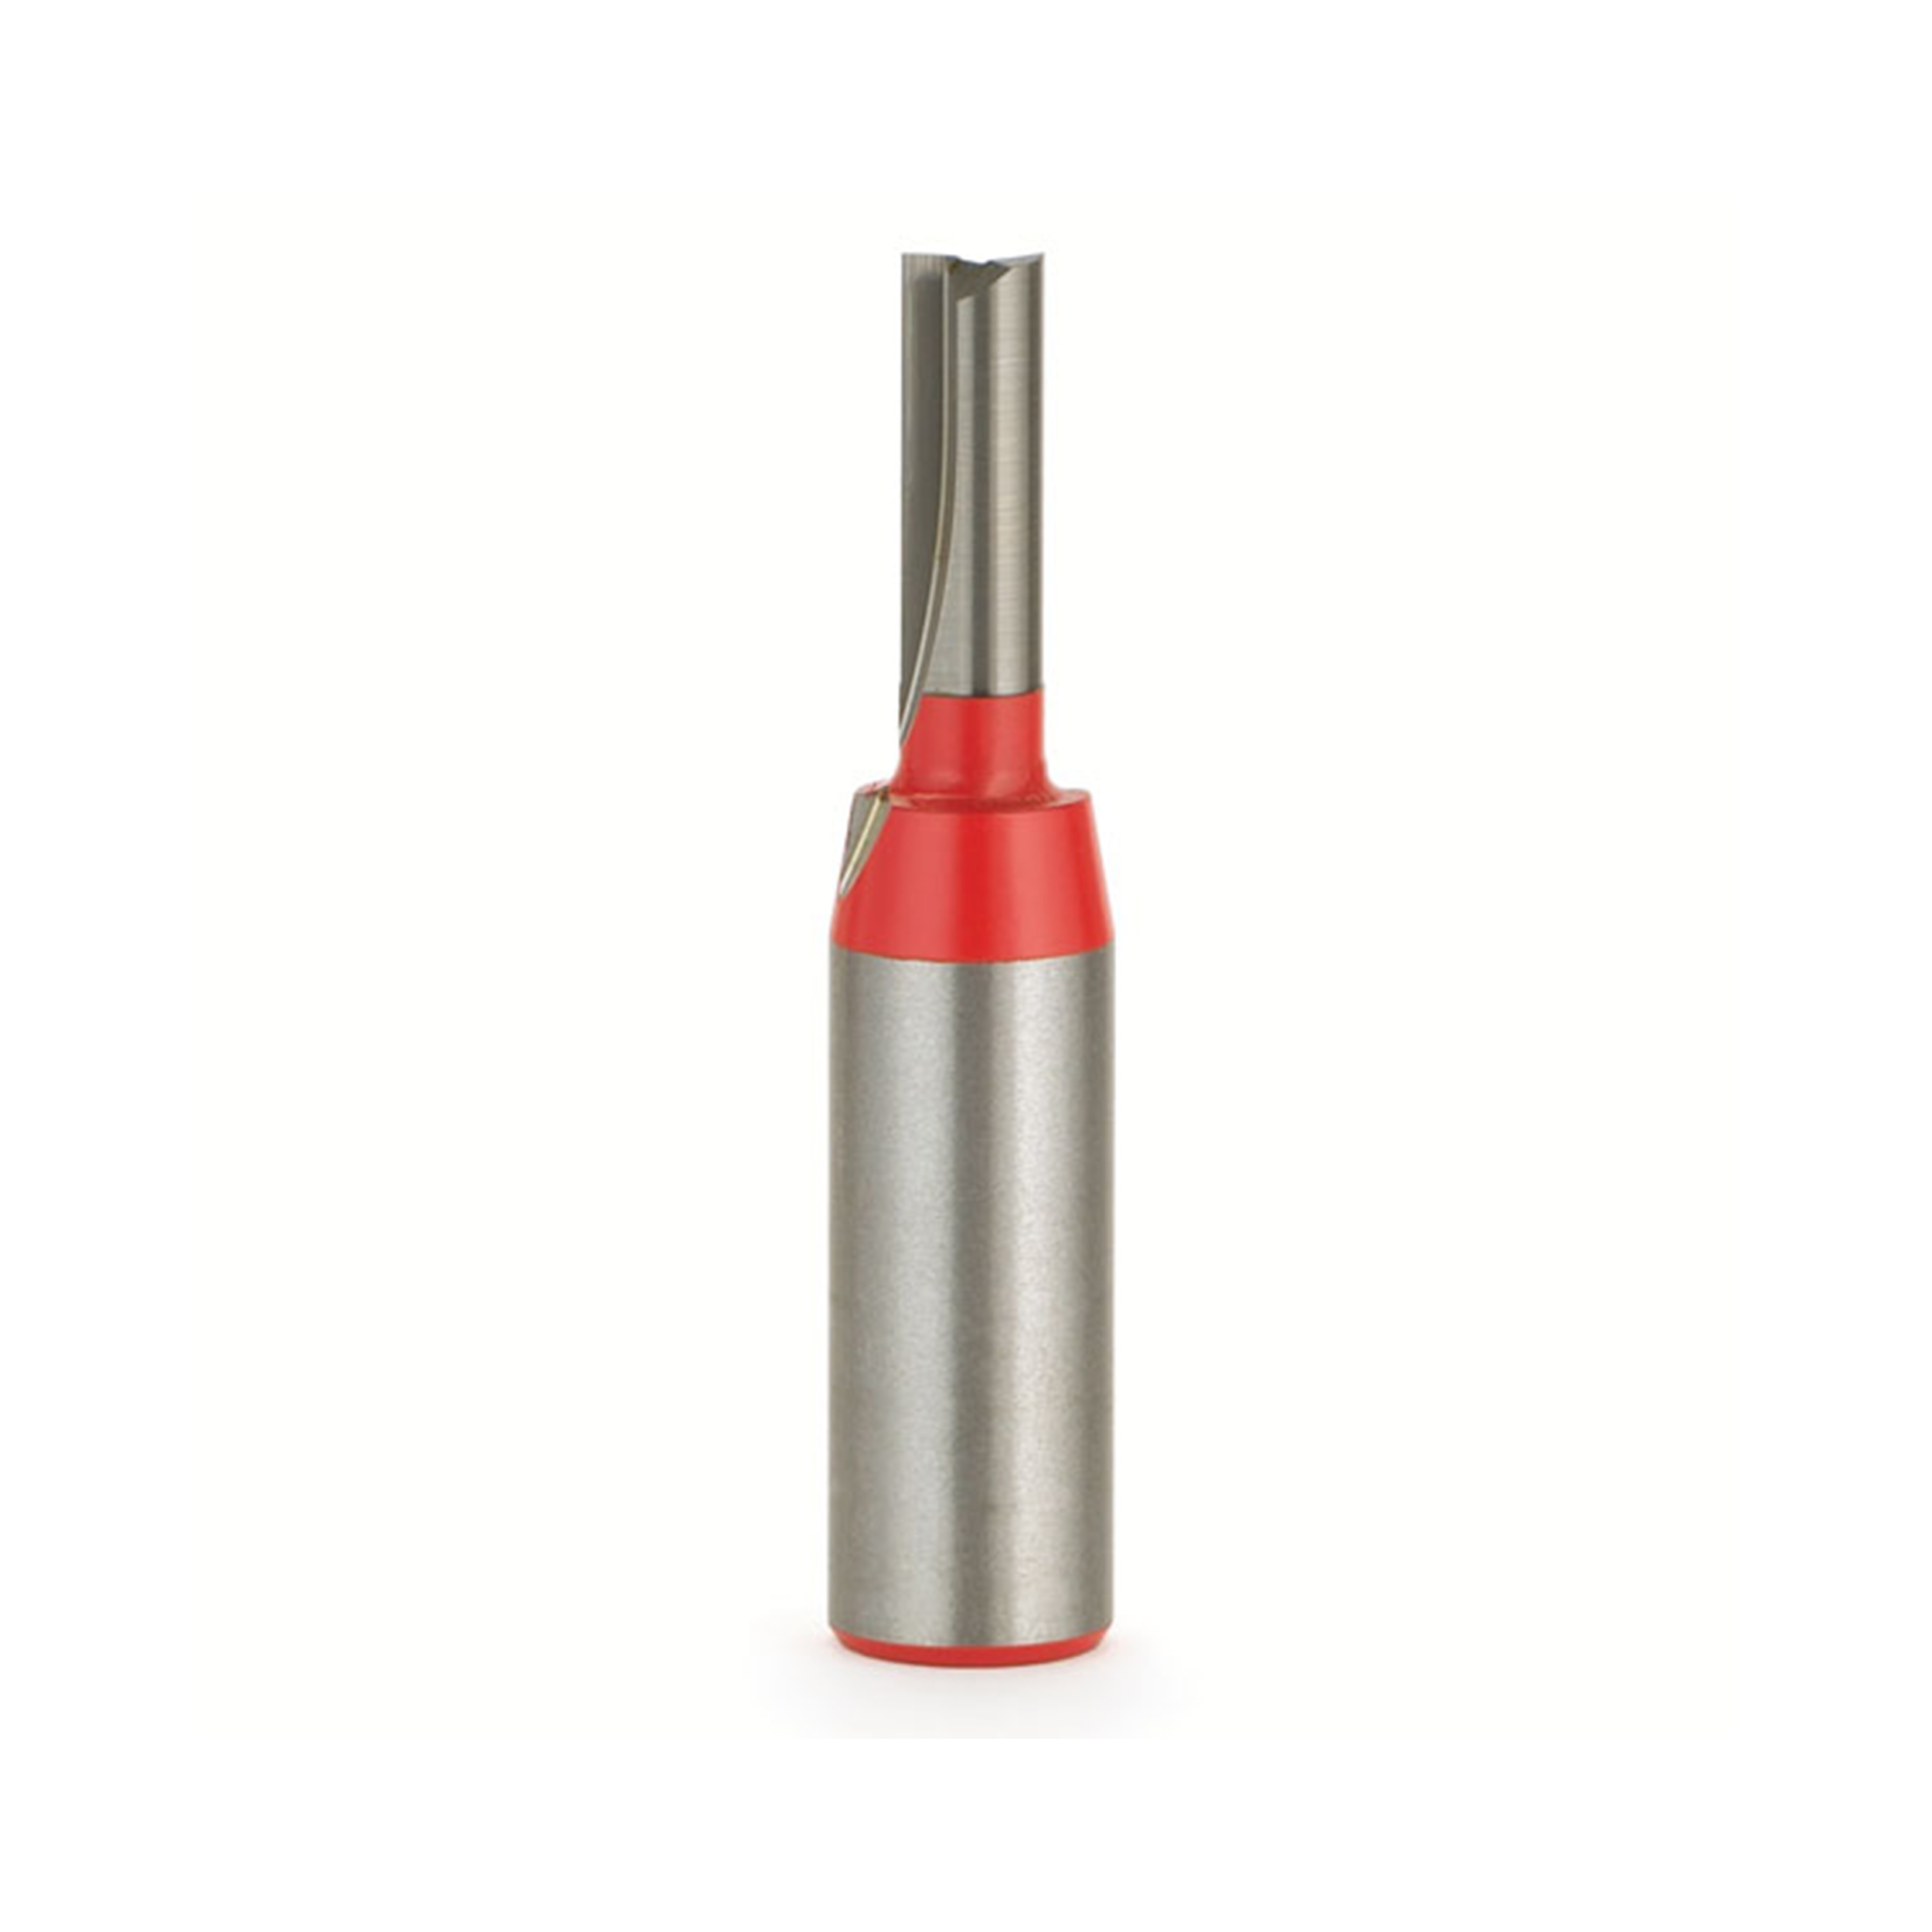 12-100 Straight Router Bit 1/2